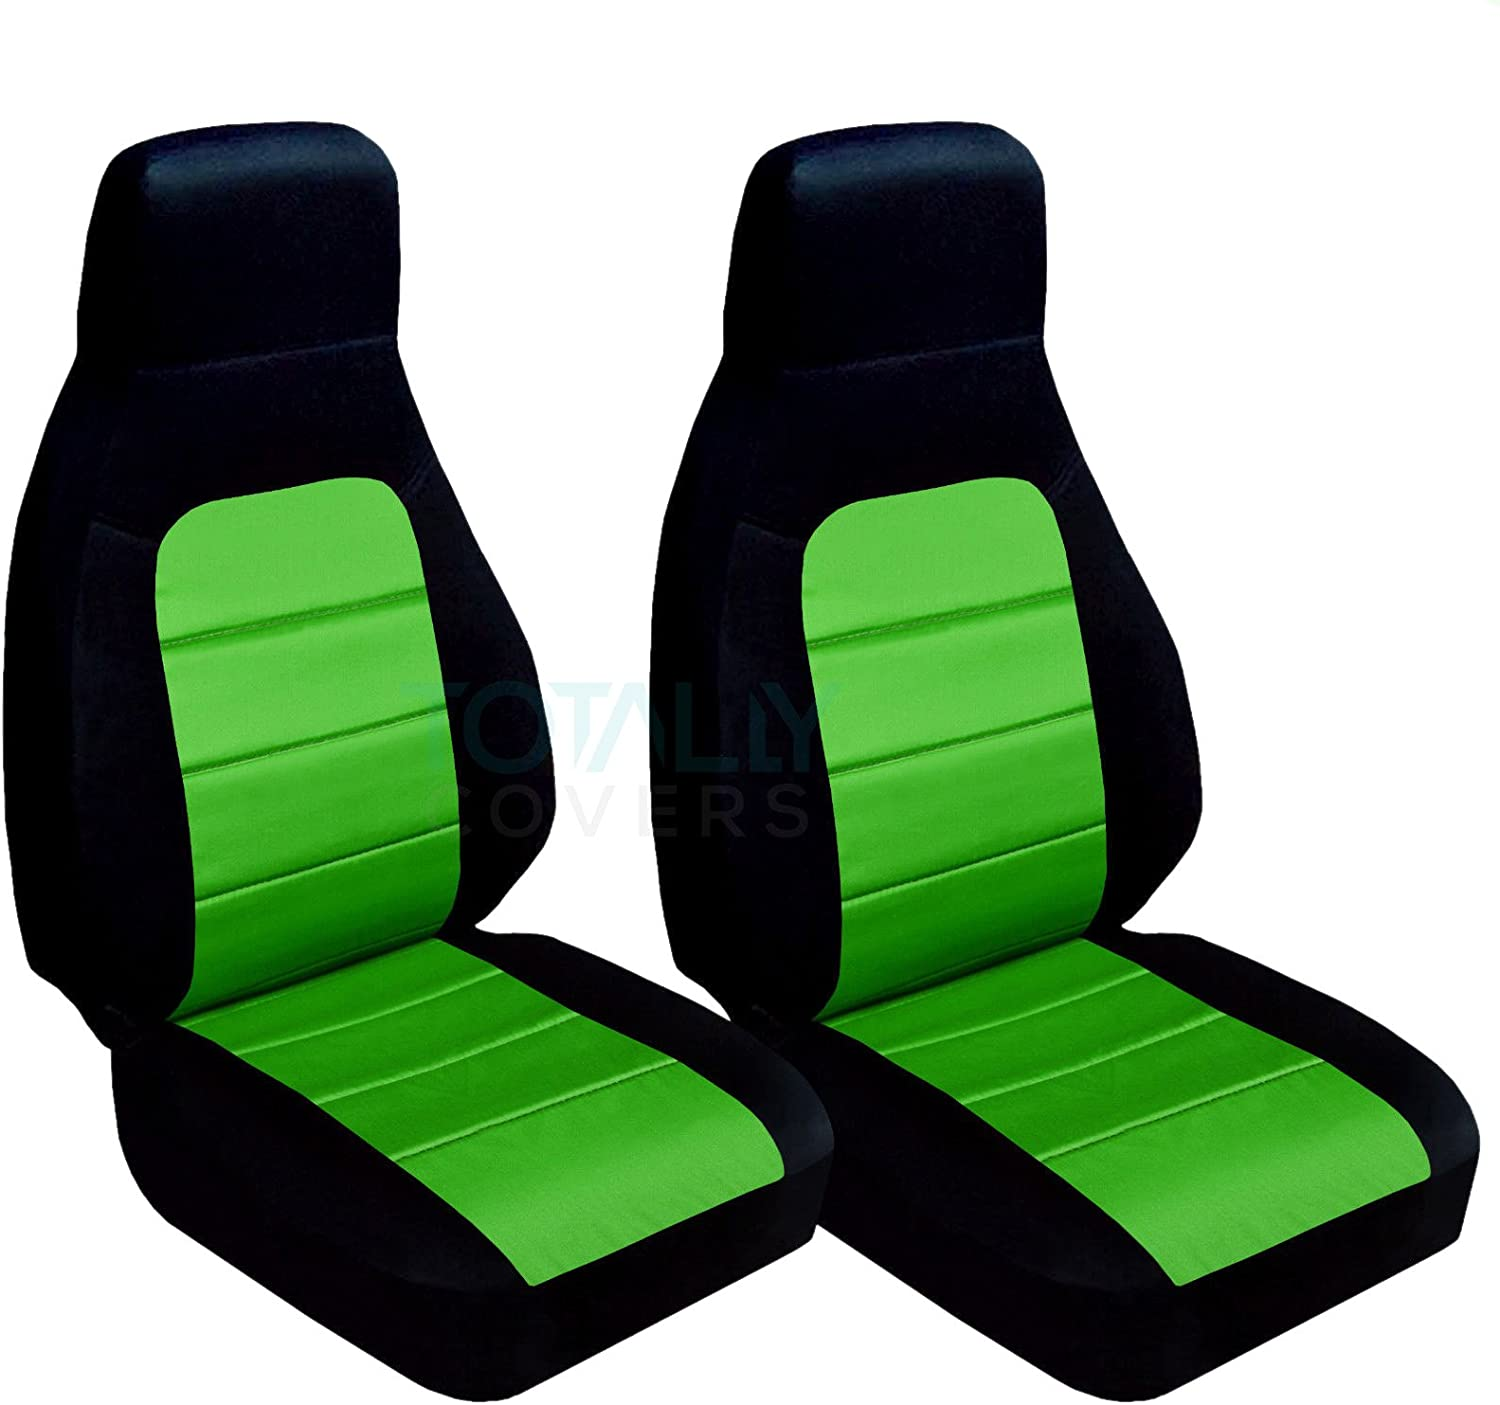 Black and Red Totally Covers Compatible with 1990-2000 Mazda MX-5 Miata Seat Covers Bucket 22 Colors